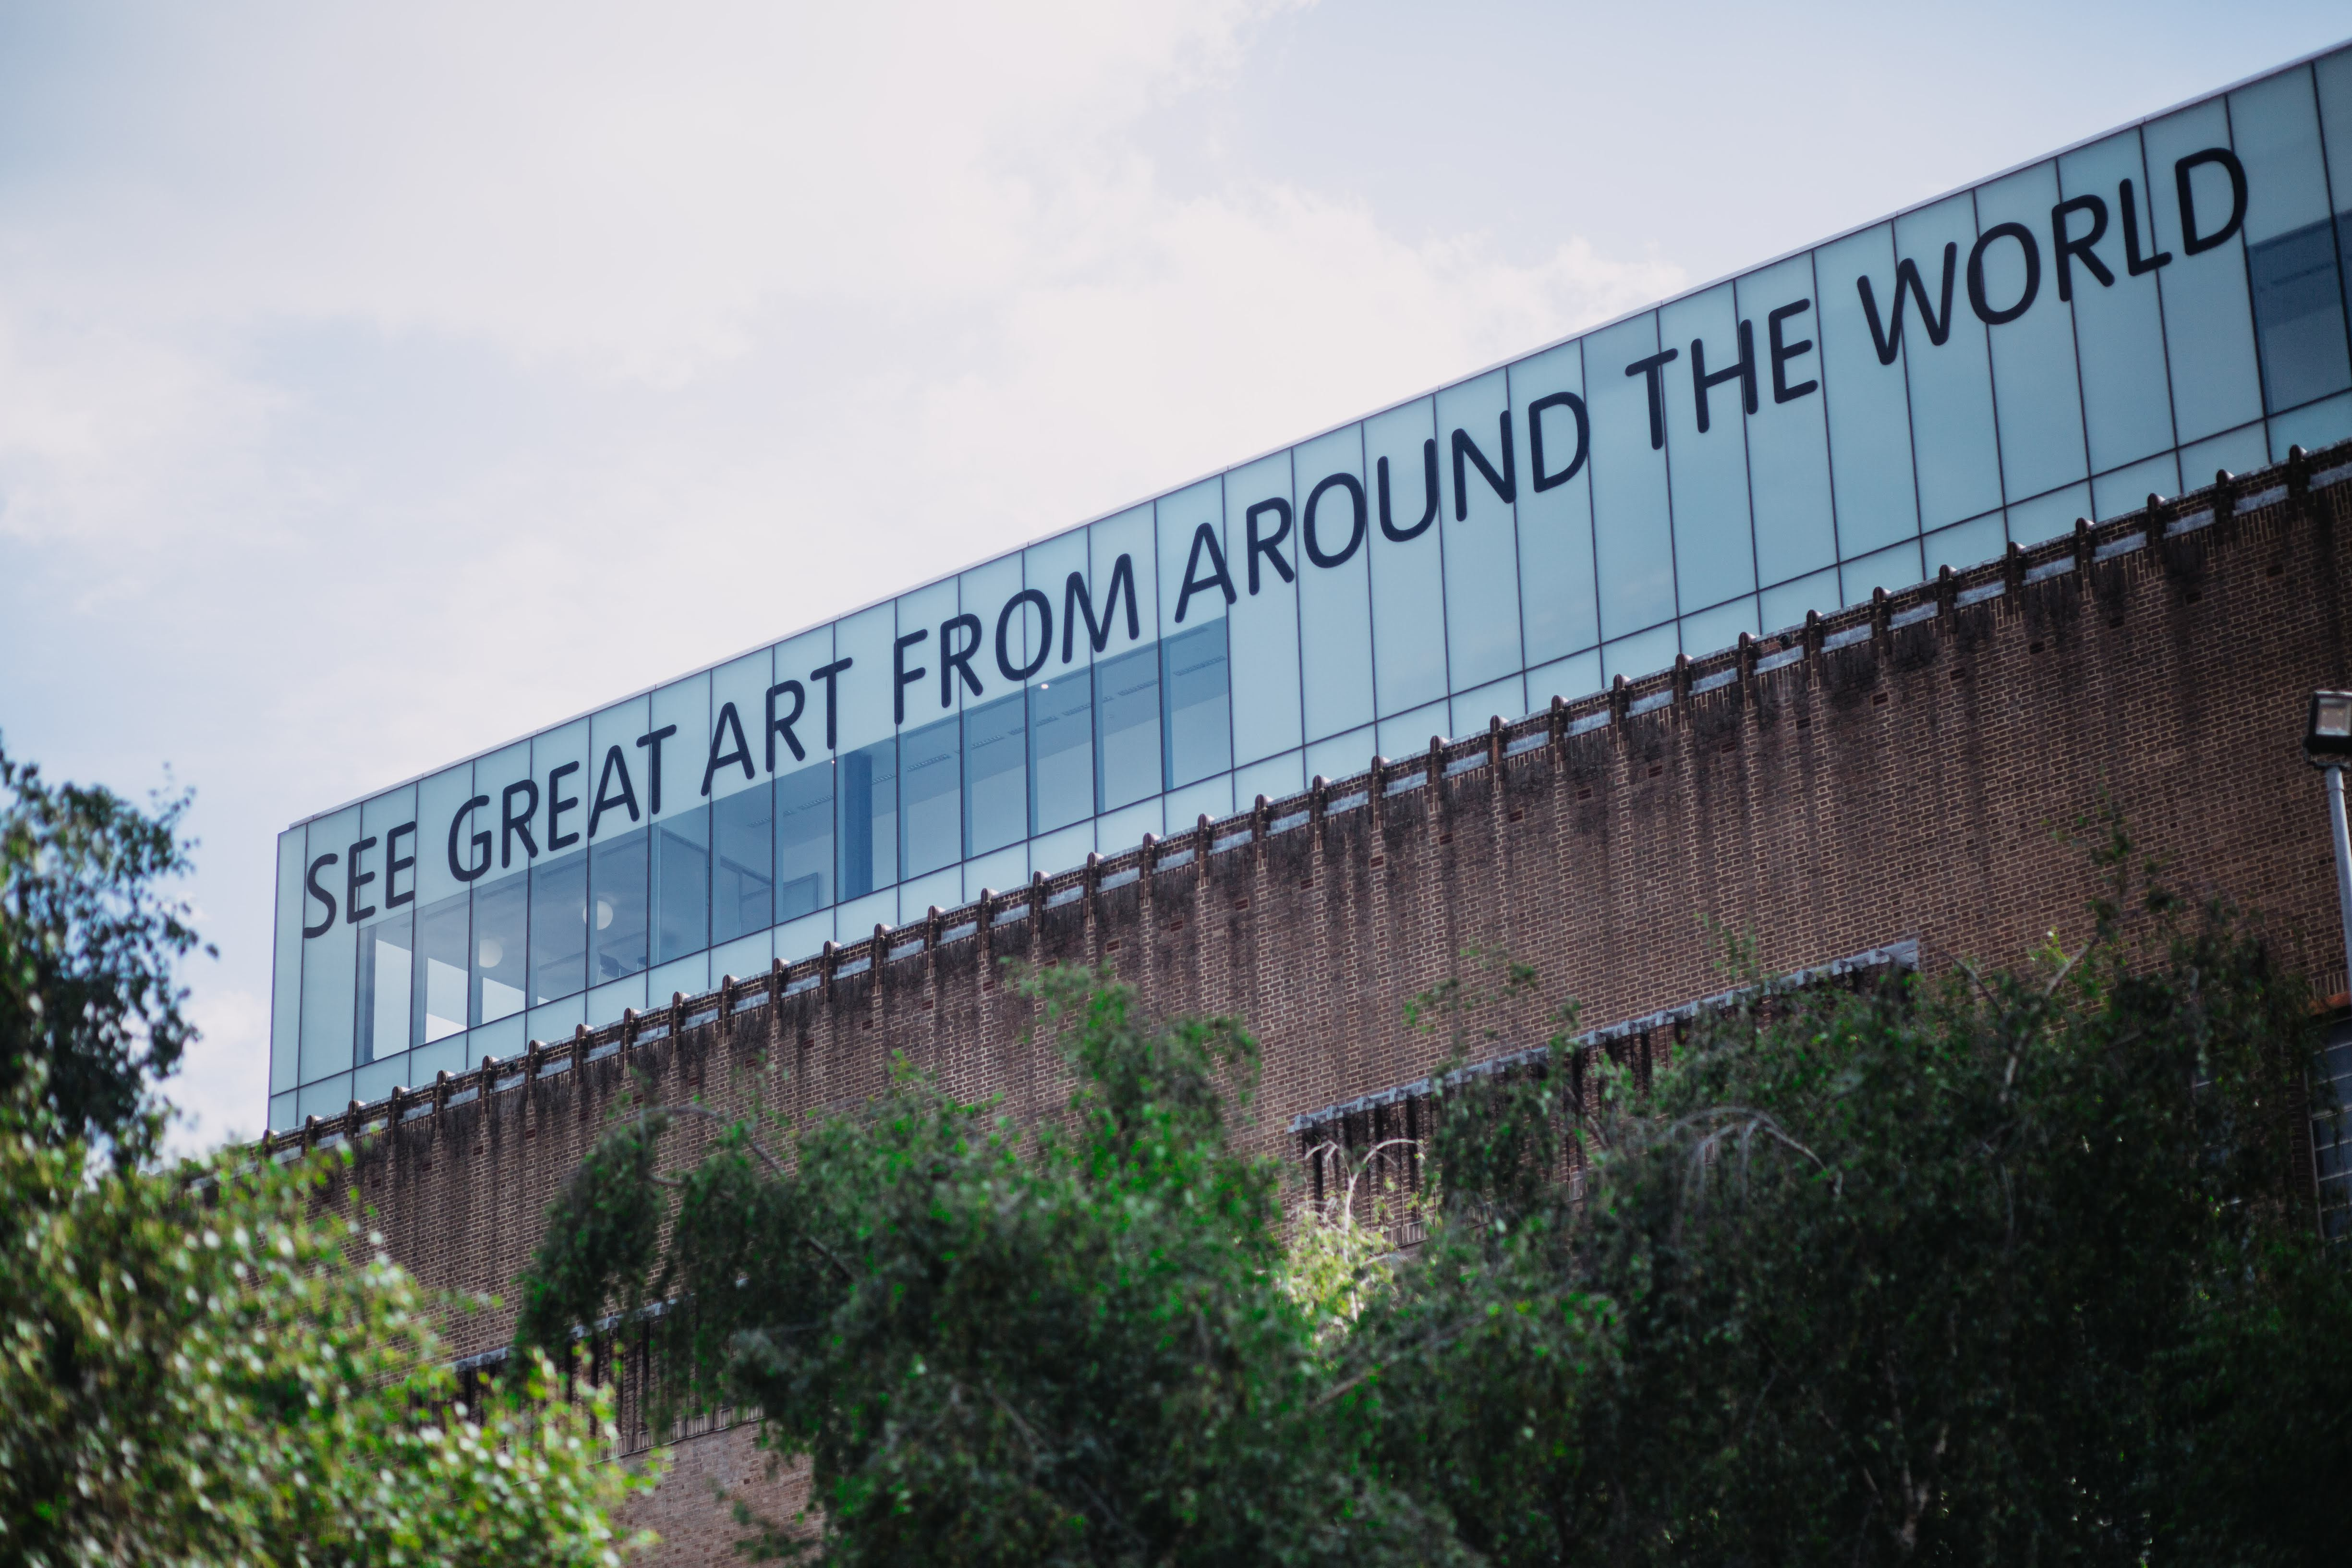 Tate Modern See Great Art from Around the World Clink Hostels London on a Budget